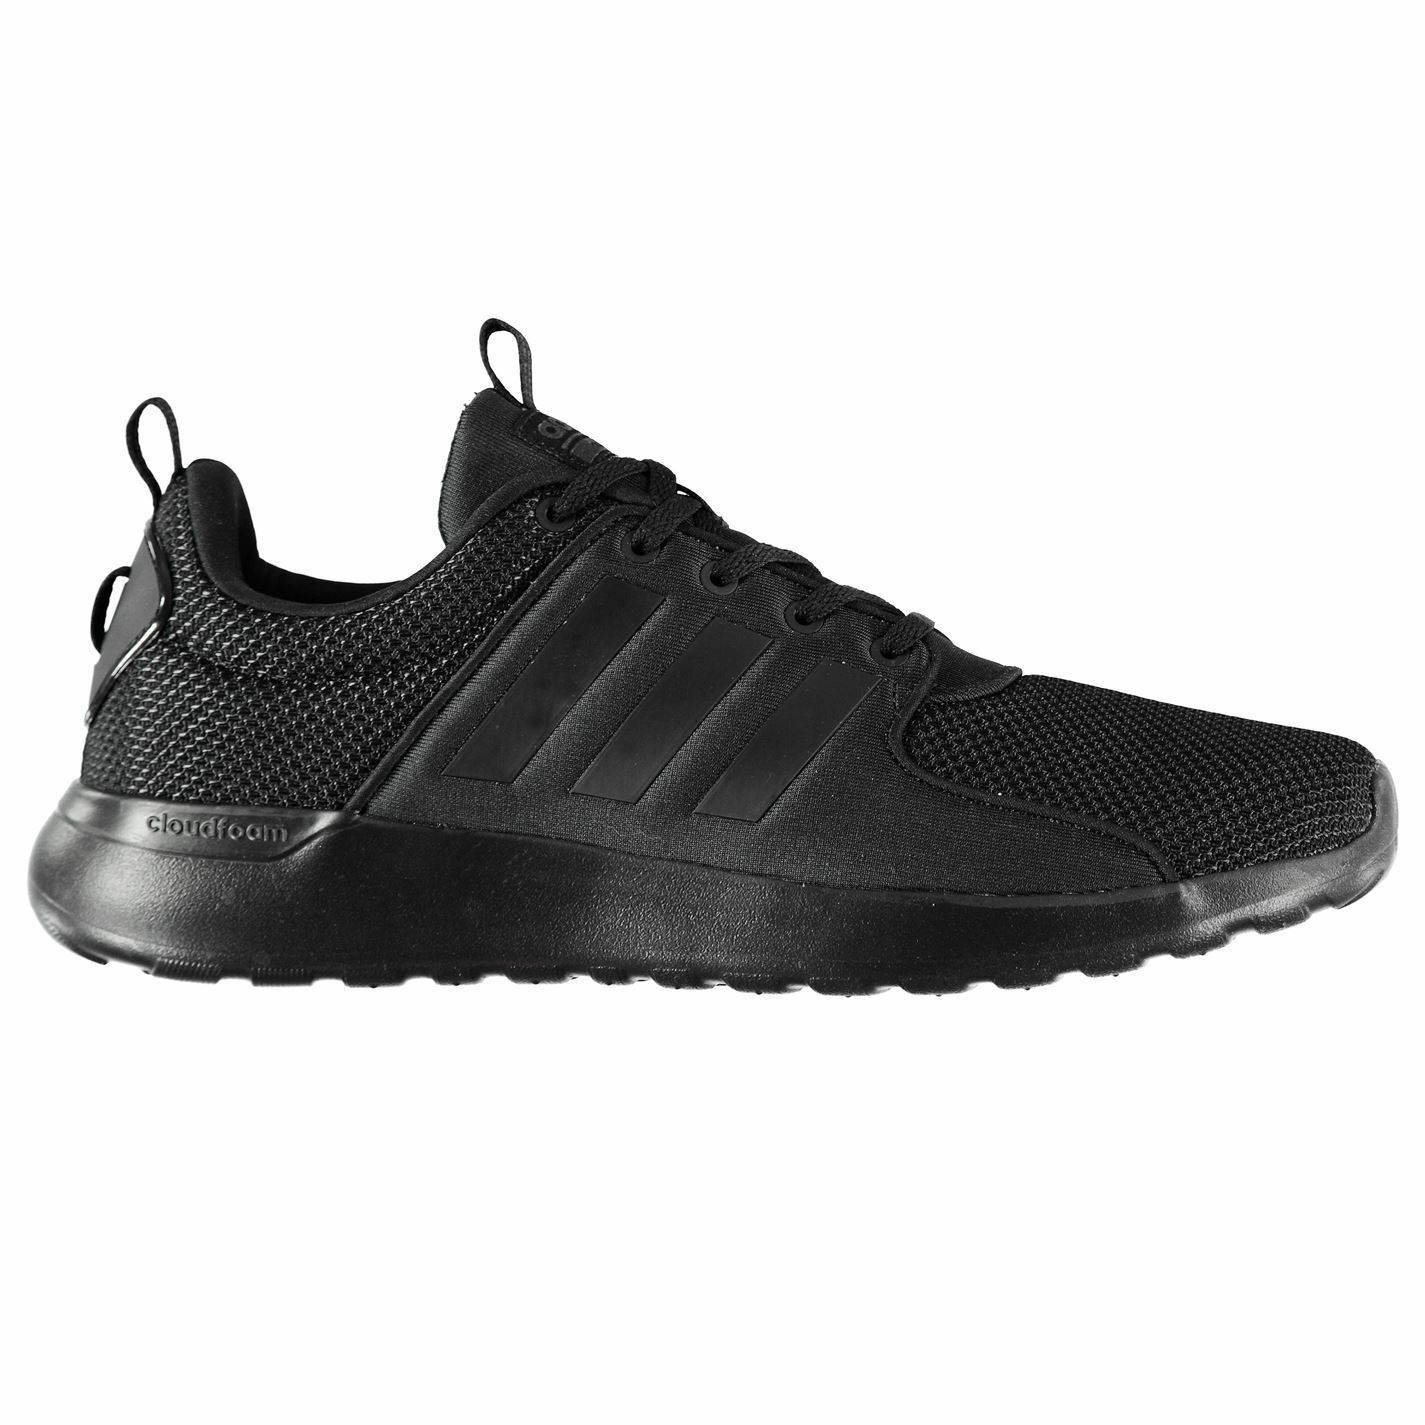 adidas Cloudfoam Lite Racer Trainers Mens Black Sports Shoes Sneakers